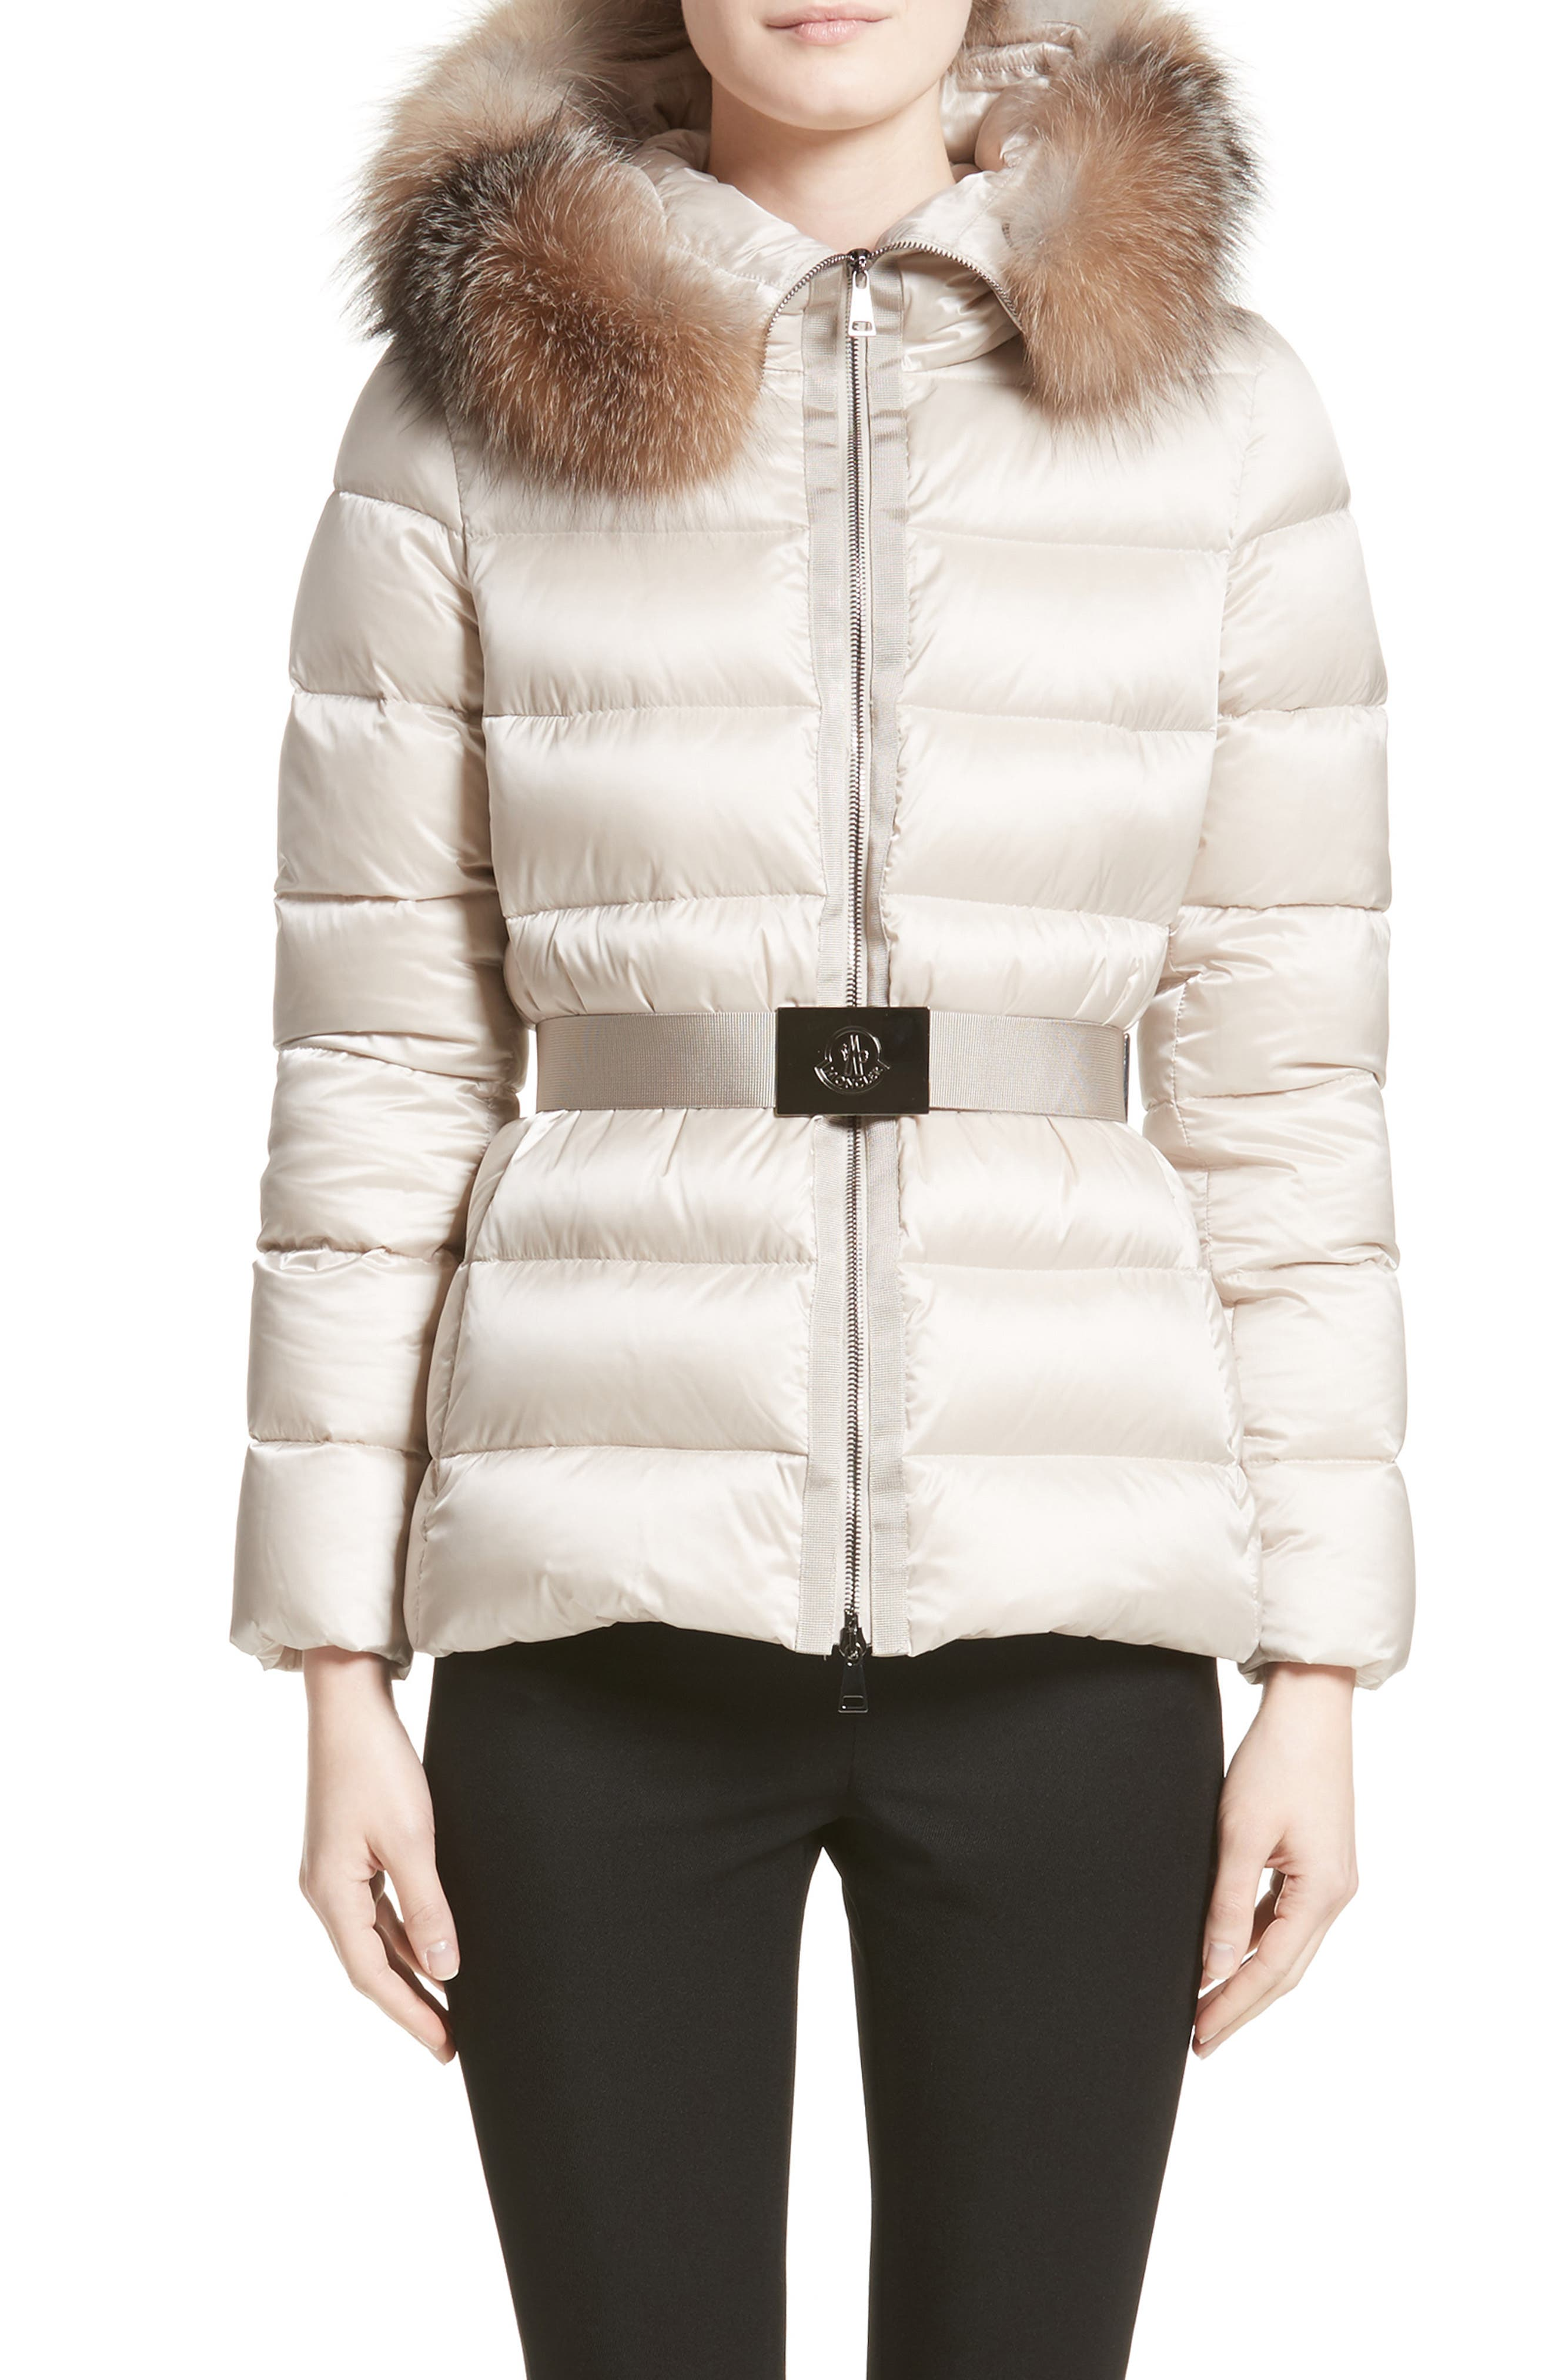 Tatie Belted Down Puffer Coat with Removable Genuine Fox Fur Trim,                             Main thumbnail 1, color,                             CHAMPAGNE